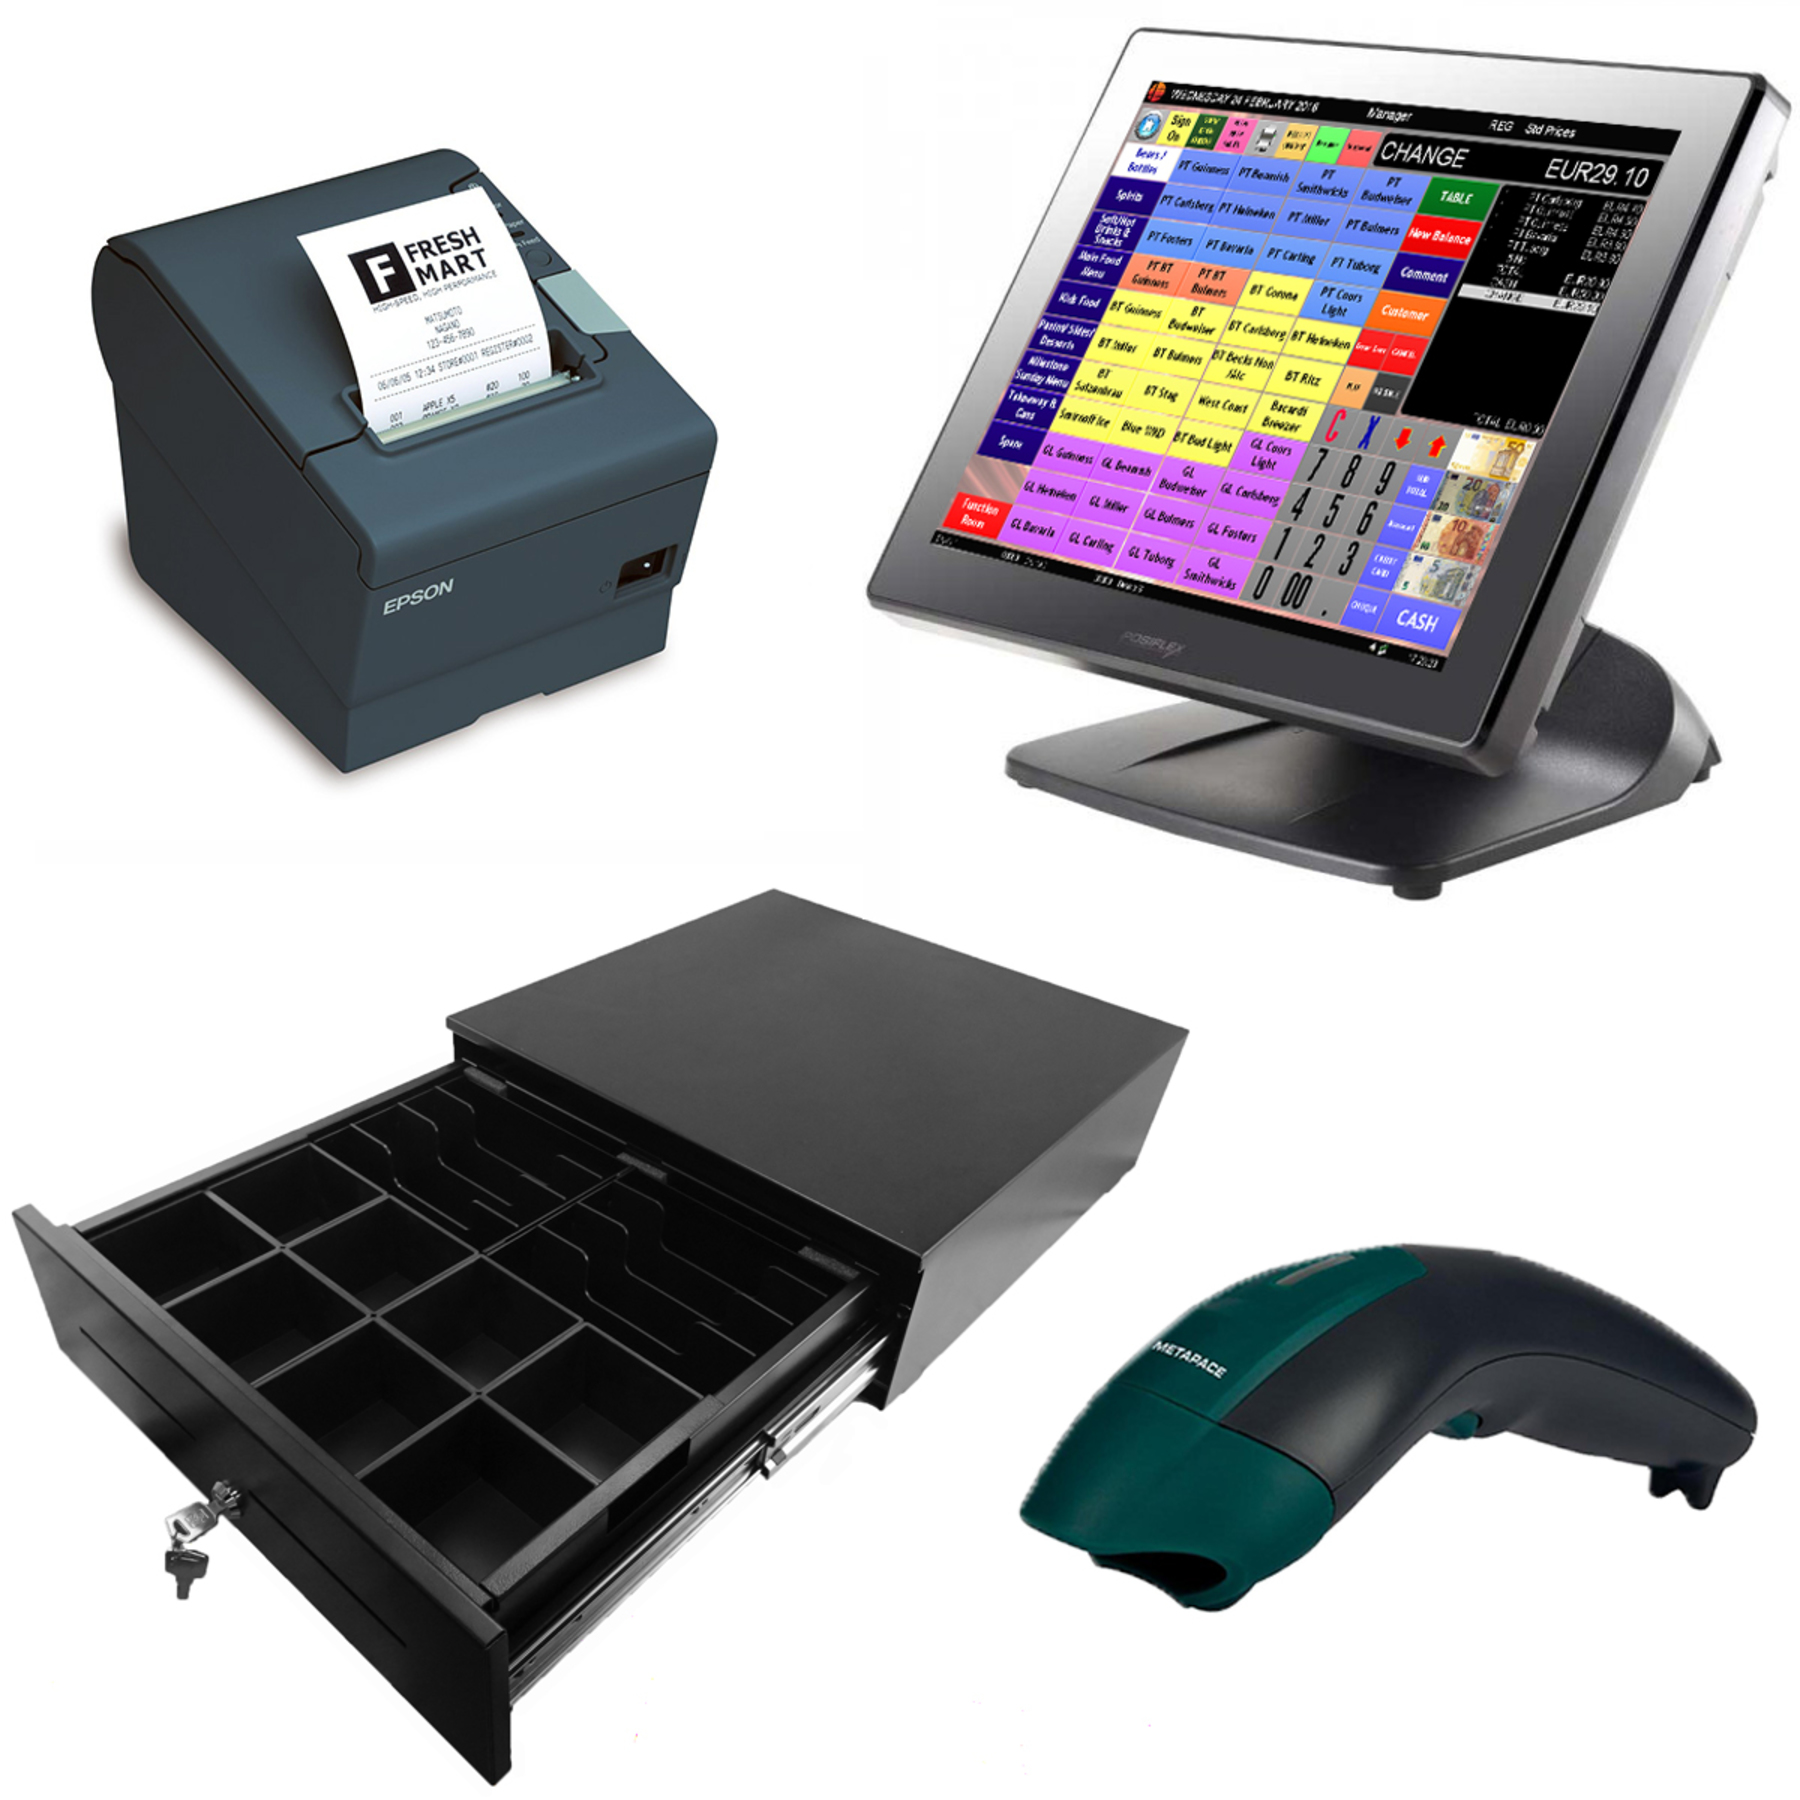 Deluxe Complete ePOS System + Scanner - Posiflex Touchscreen